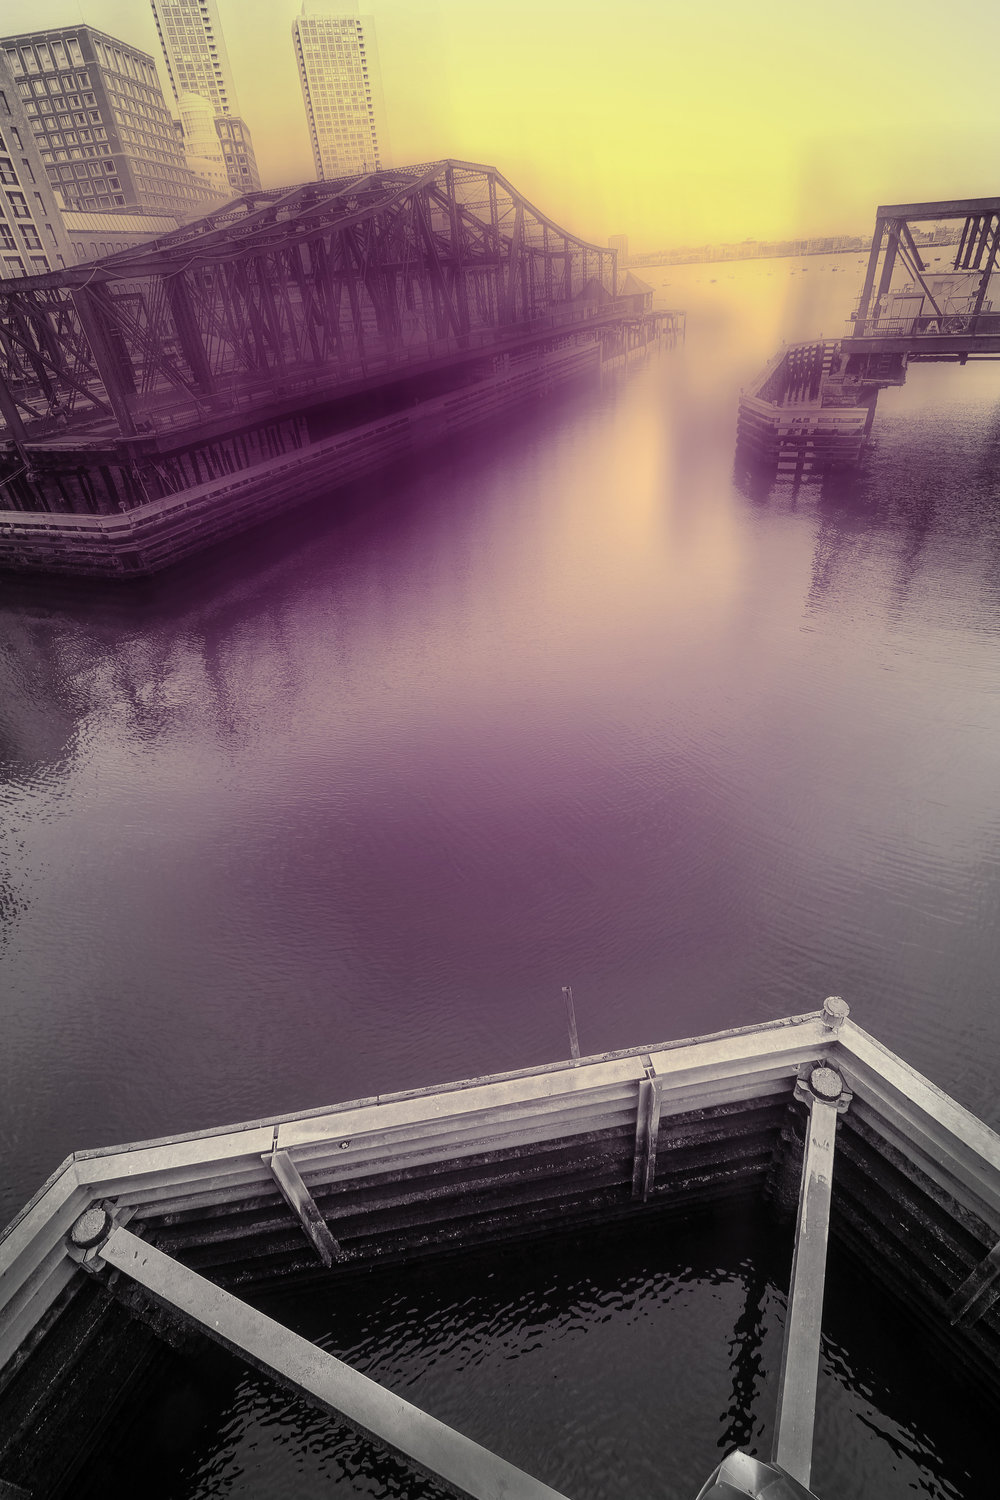 "Bridge with Cobalt Violet and Cadmium Yellow, 9:44 am , digital photograph on plexiglass, 24"" x 16"", $900"